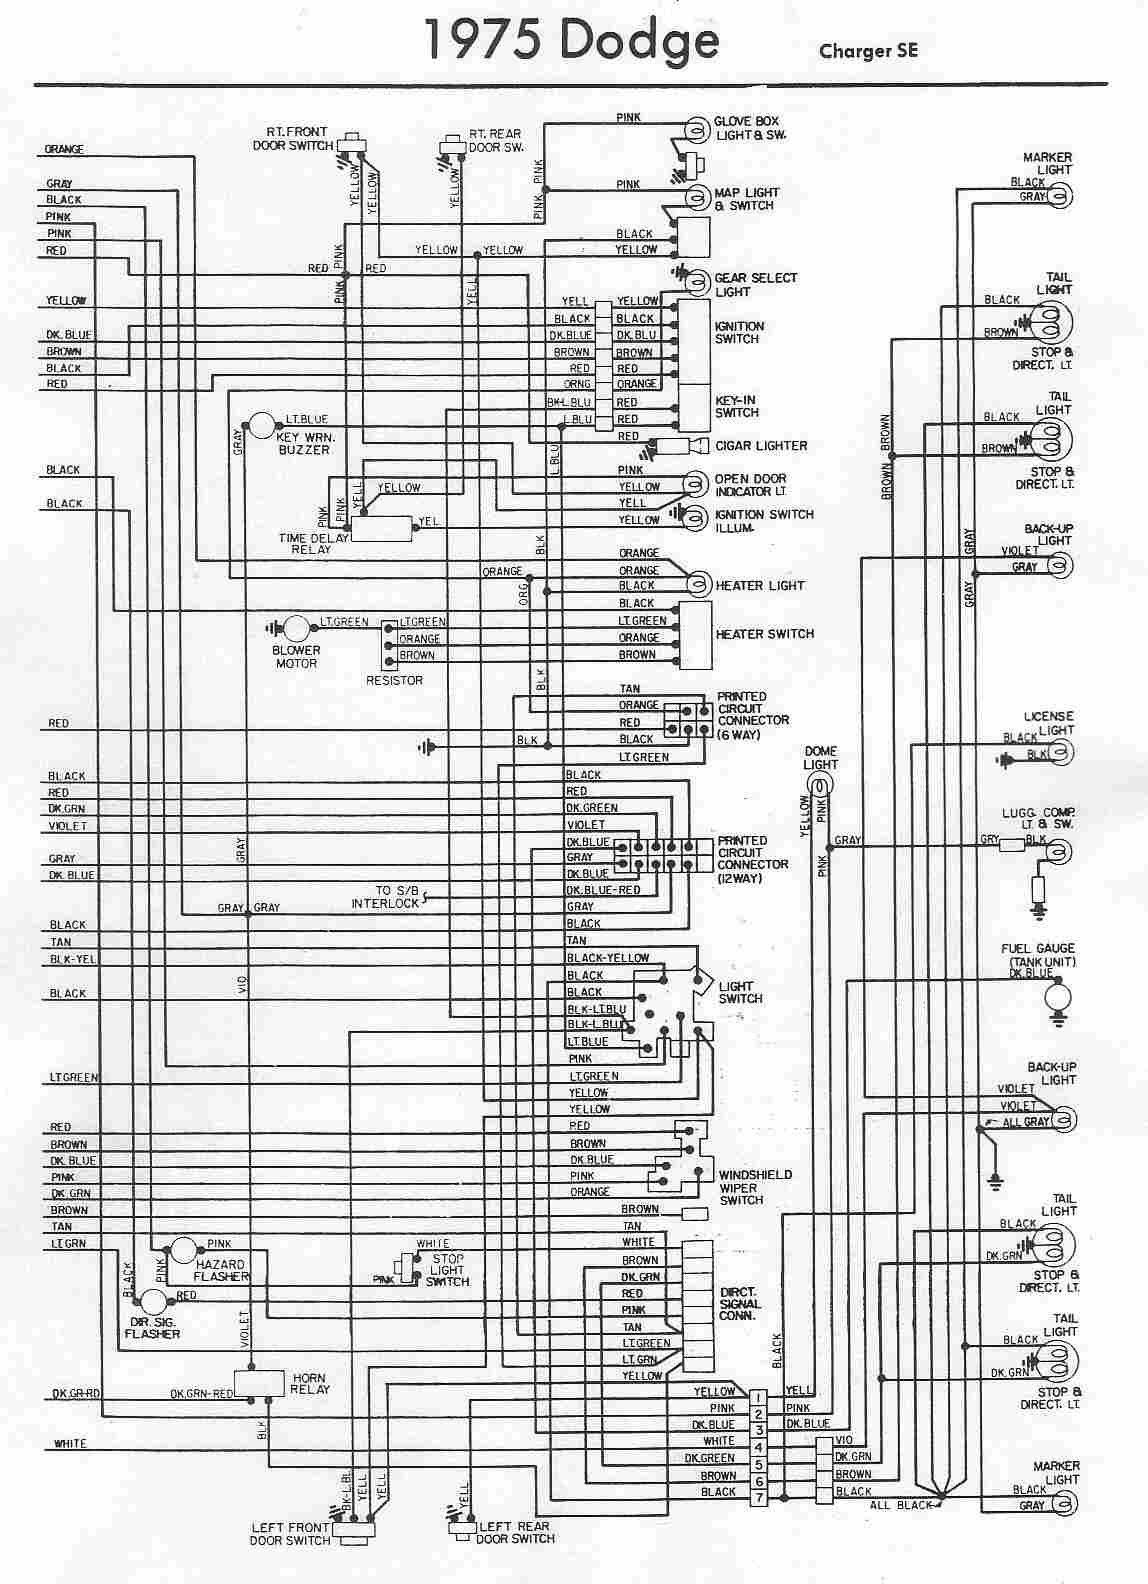 hight resolution of 1973 dodge challenger wiring diagram somurich com 2009 dodge challenger fuse box diagram 2010 dodge challenger fuse box